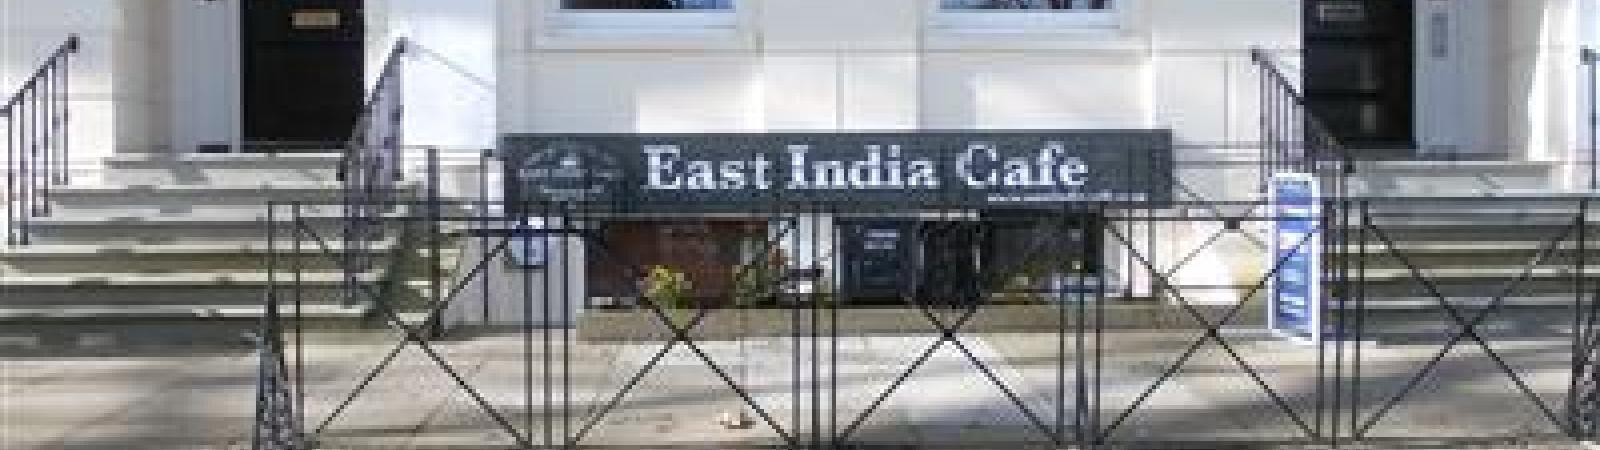 EAST INDIA CAFE on Cheltenham Night Out | Promoting Cheltenham's nightlife for a great night out in Cheltenham.